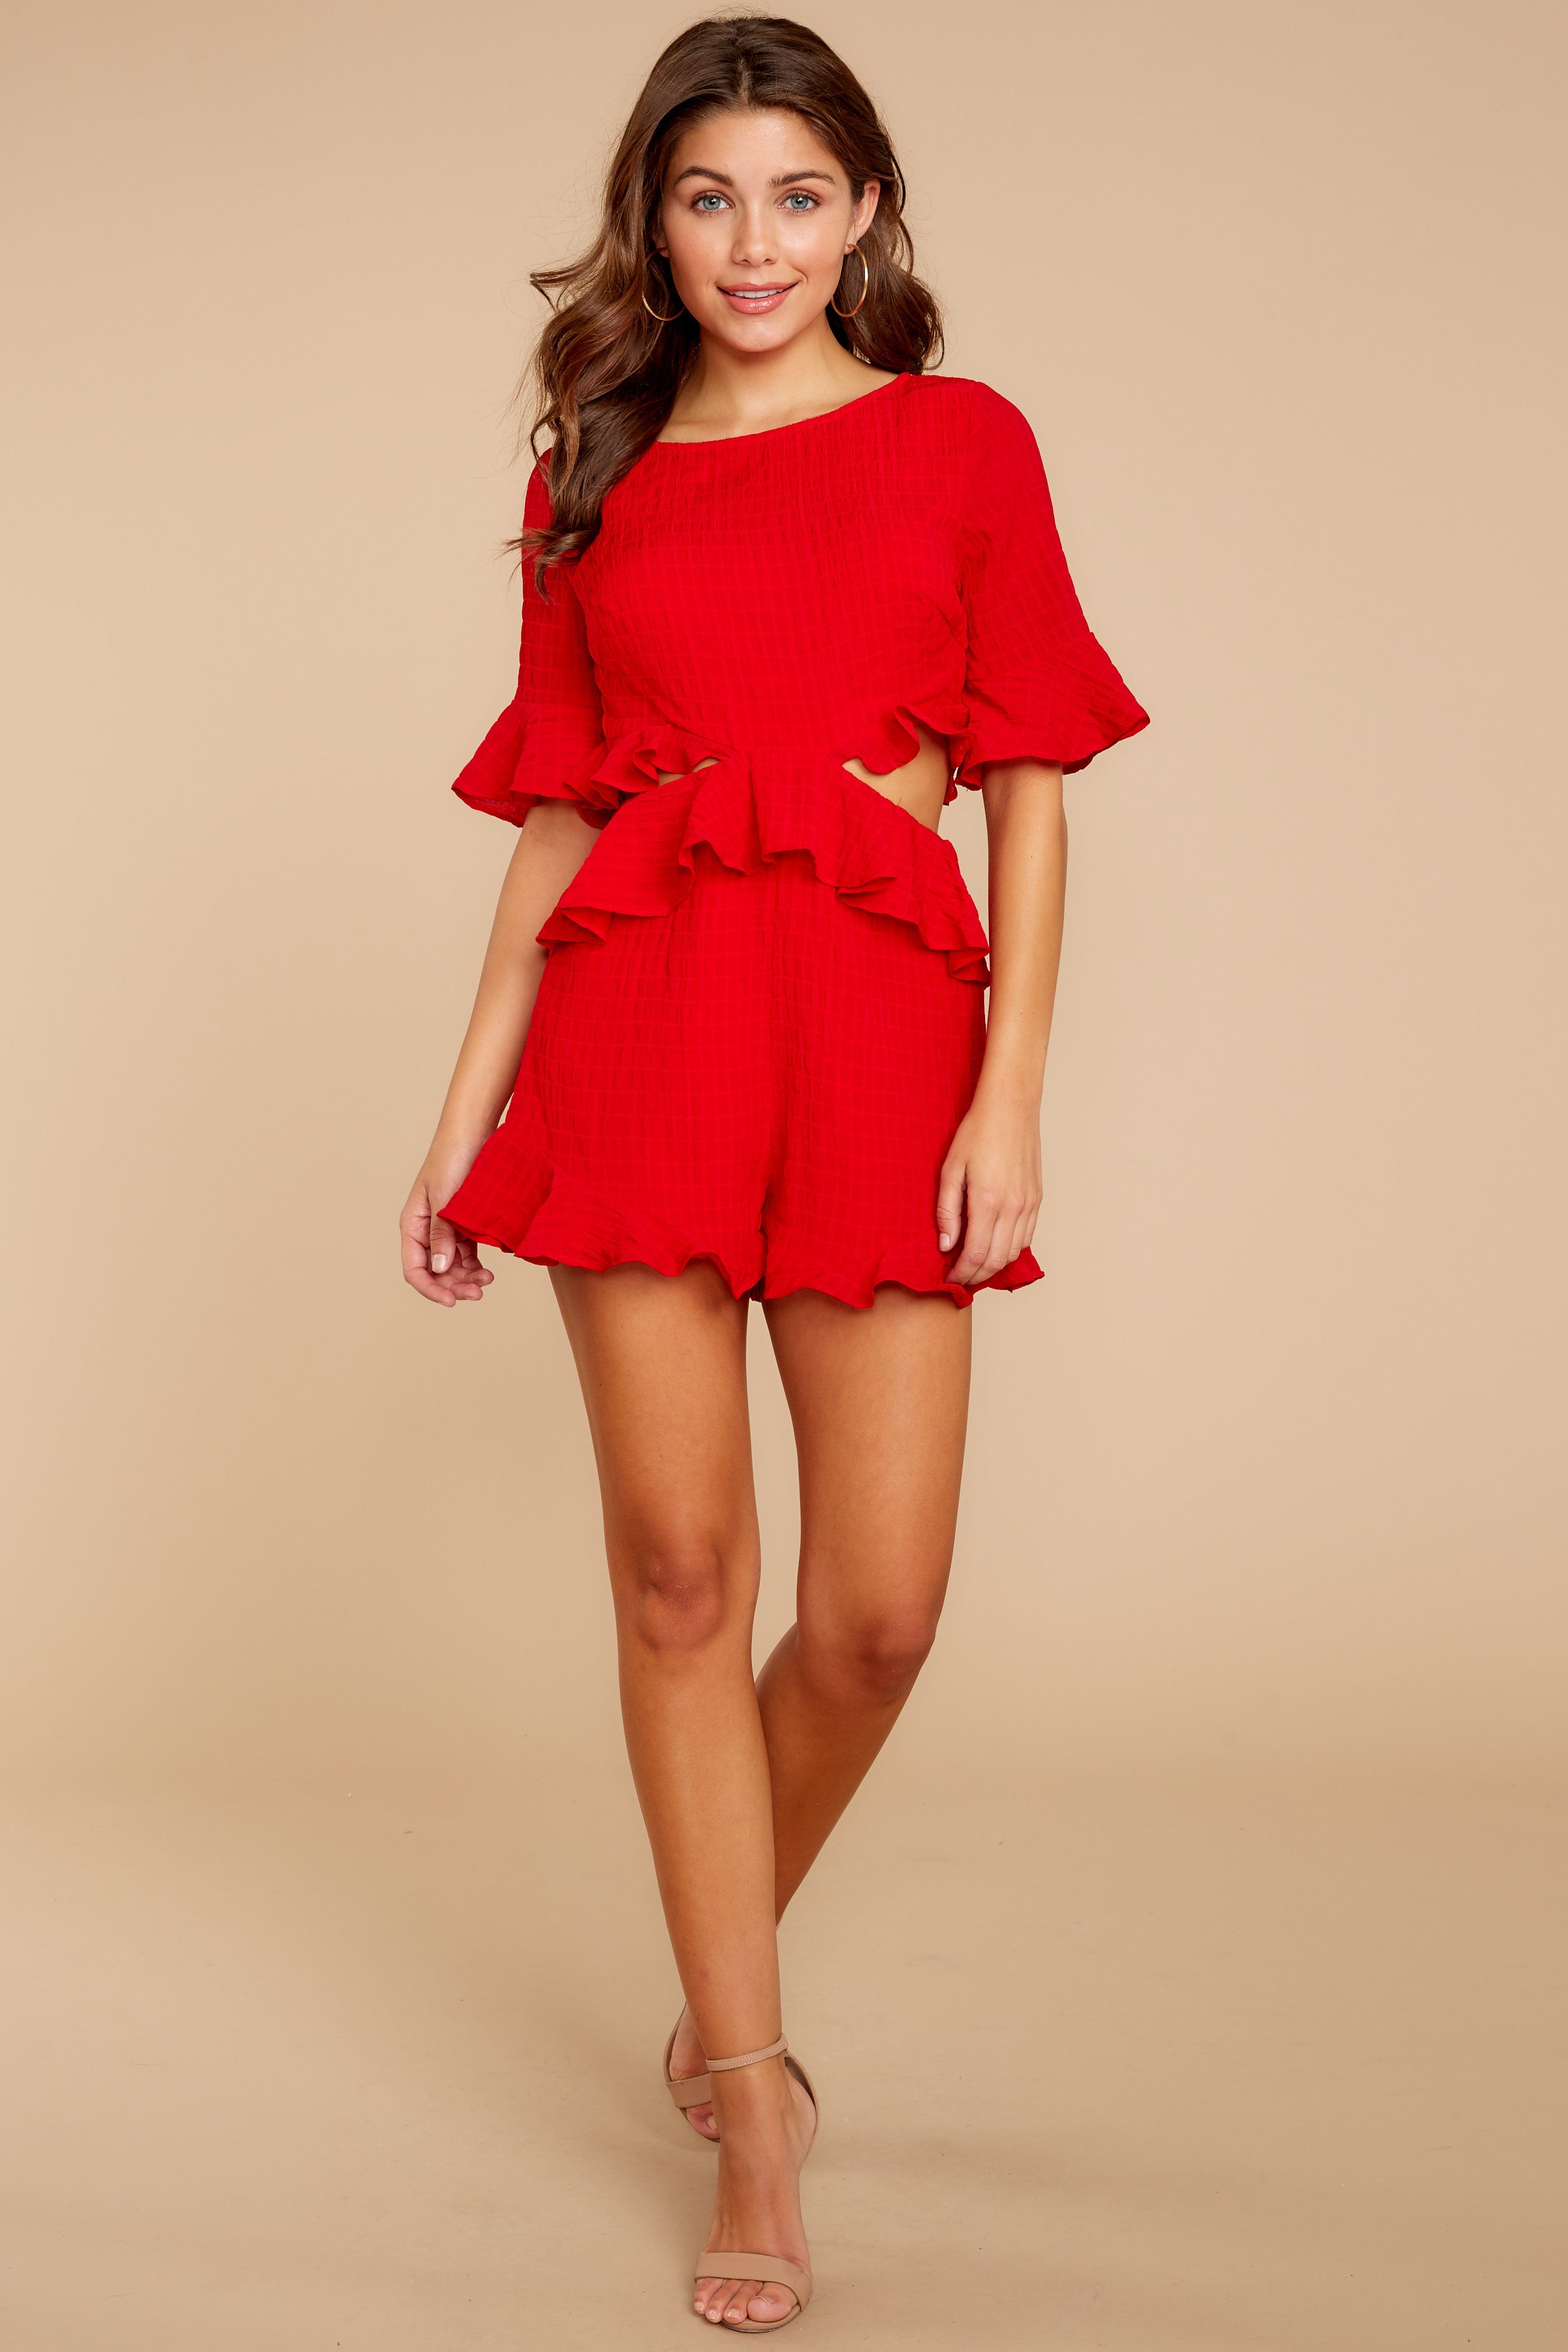 7746a3022a91 Flirty Red Romper - Trendy Short Ruffled Romper - Playsuit -  48.00 – Red  Dress Boutique